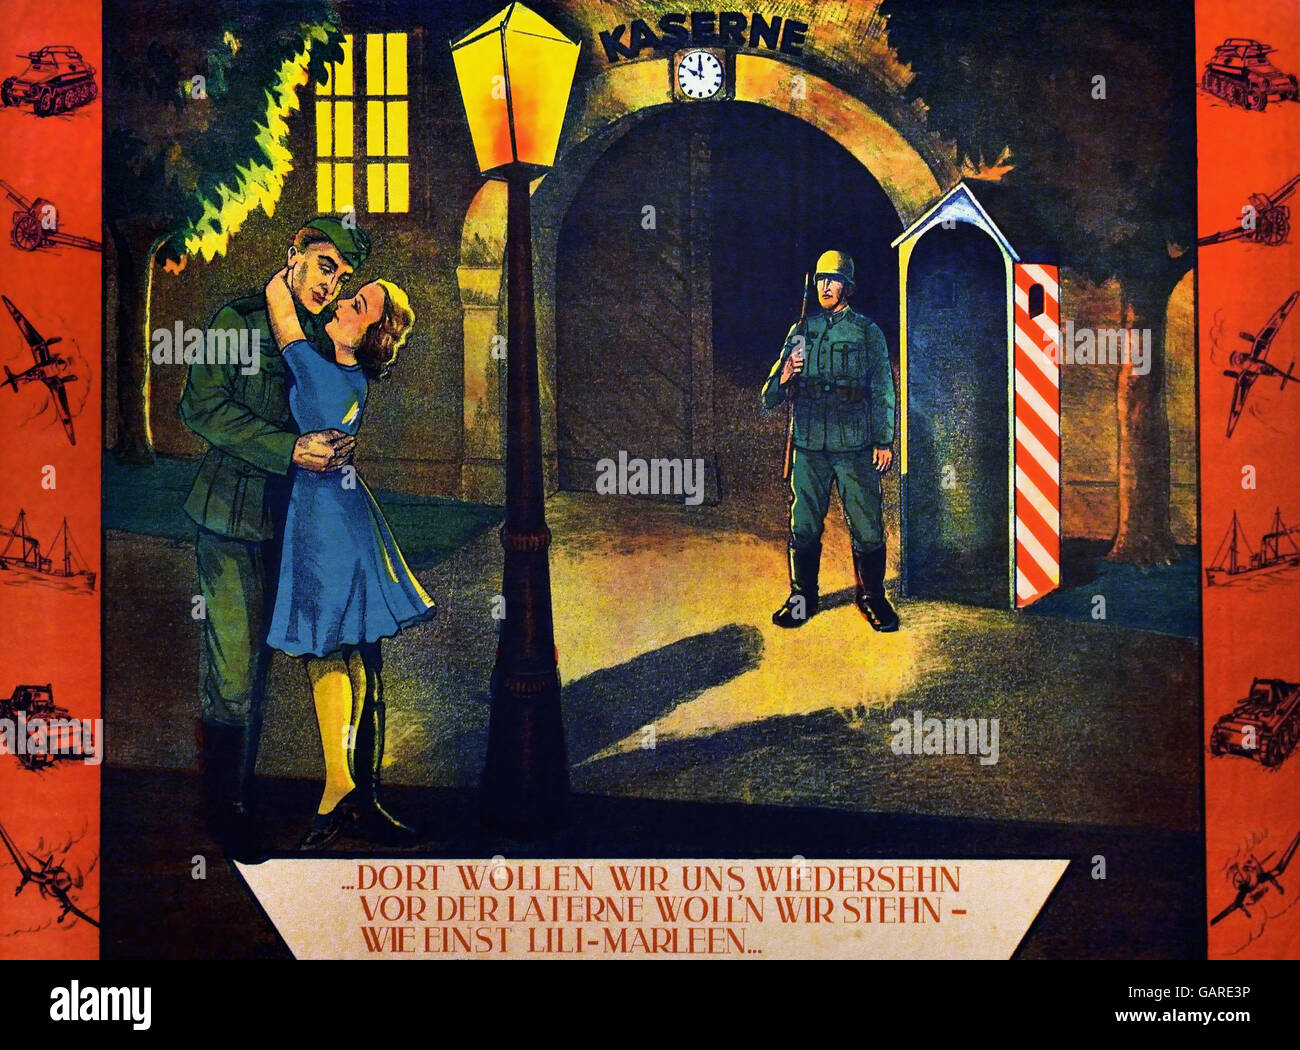 Poster for the song Lili Marleen 1941 / 1944 Berlin Nazi Germany ( Lili Marleen is a German love song which became - Stock Image